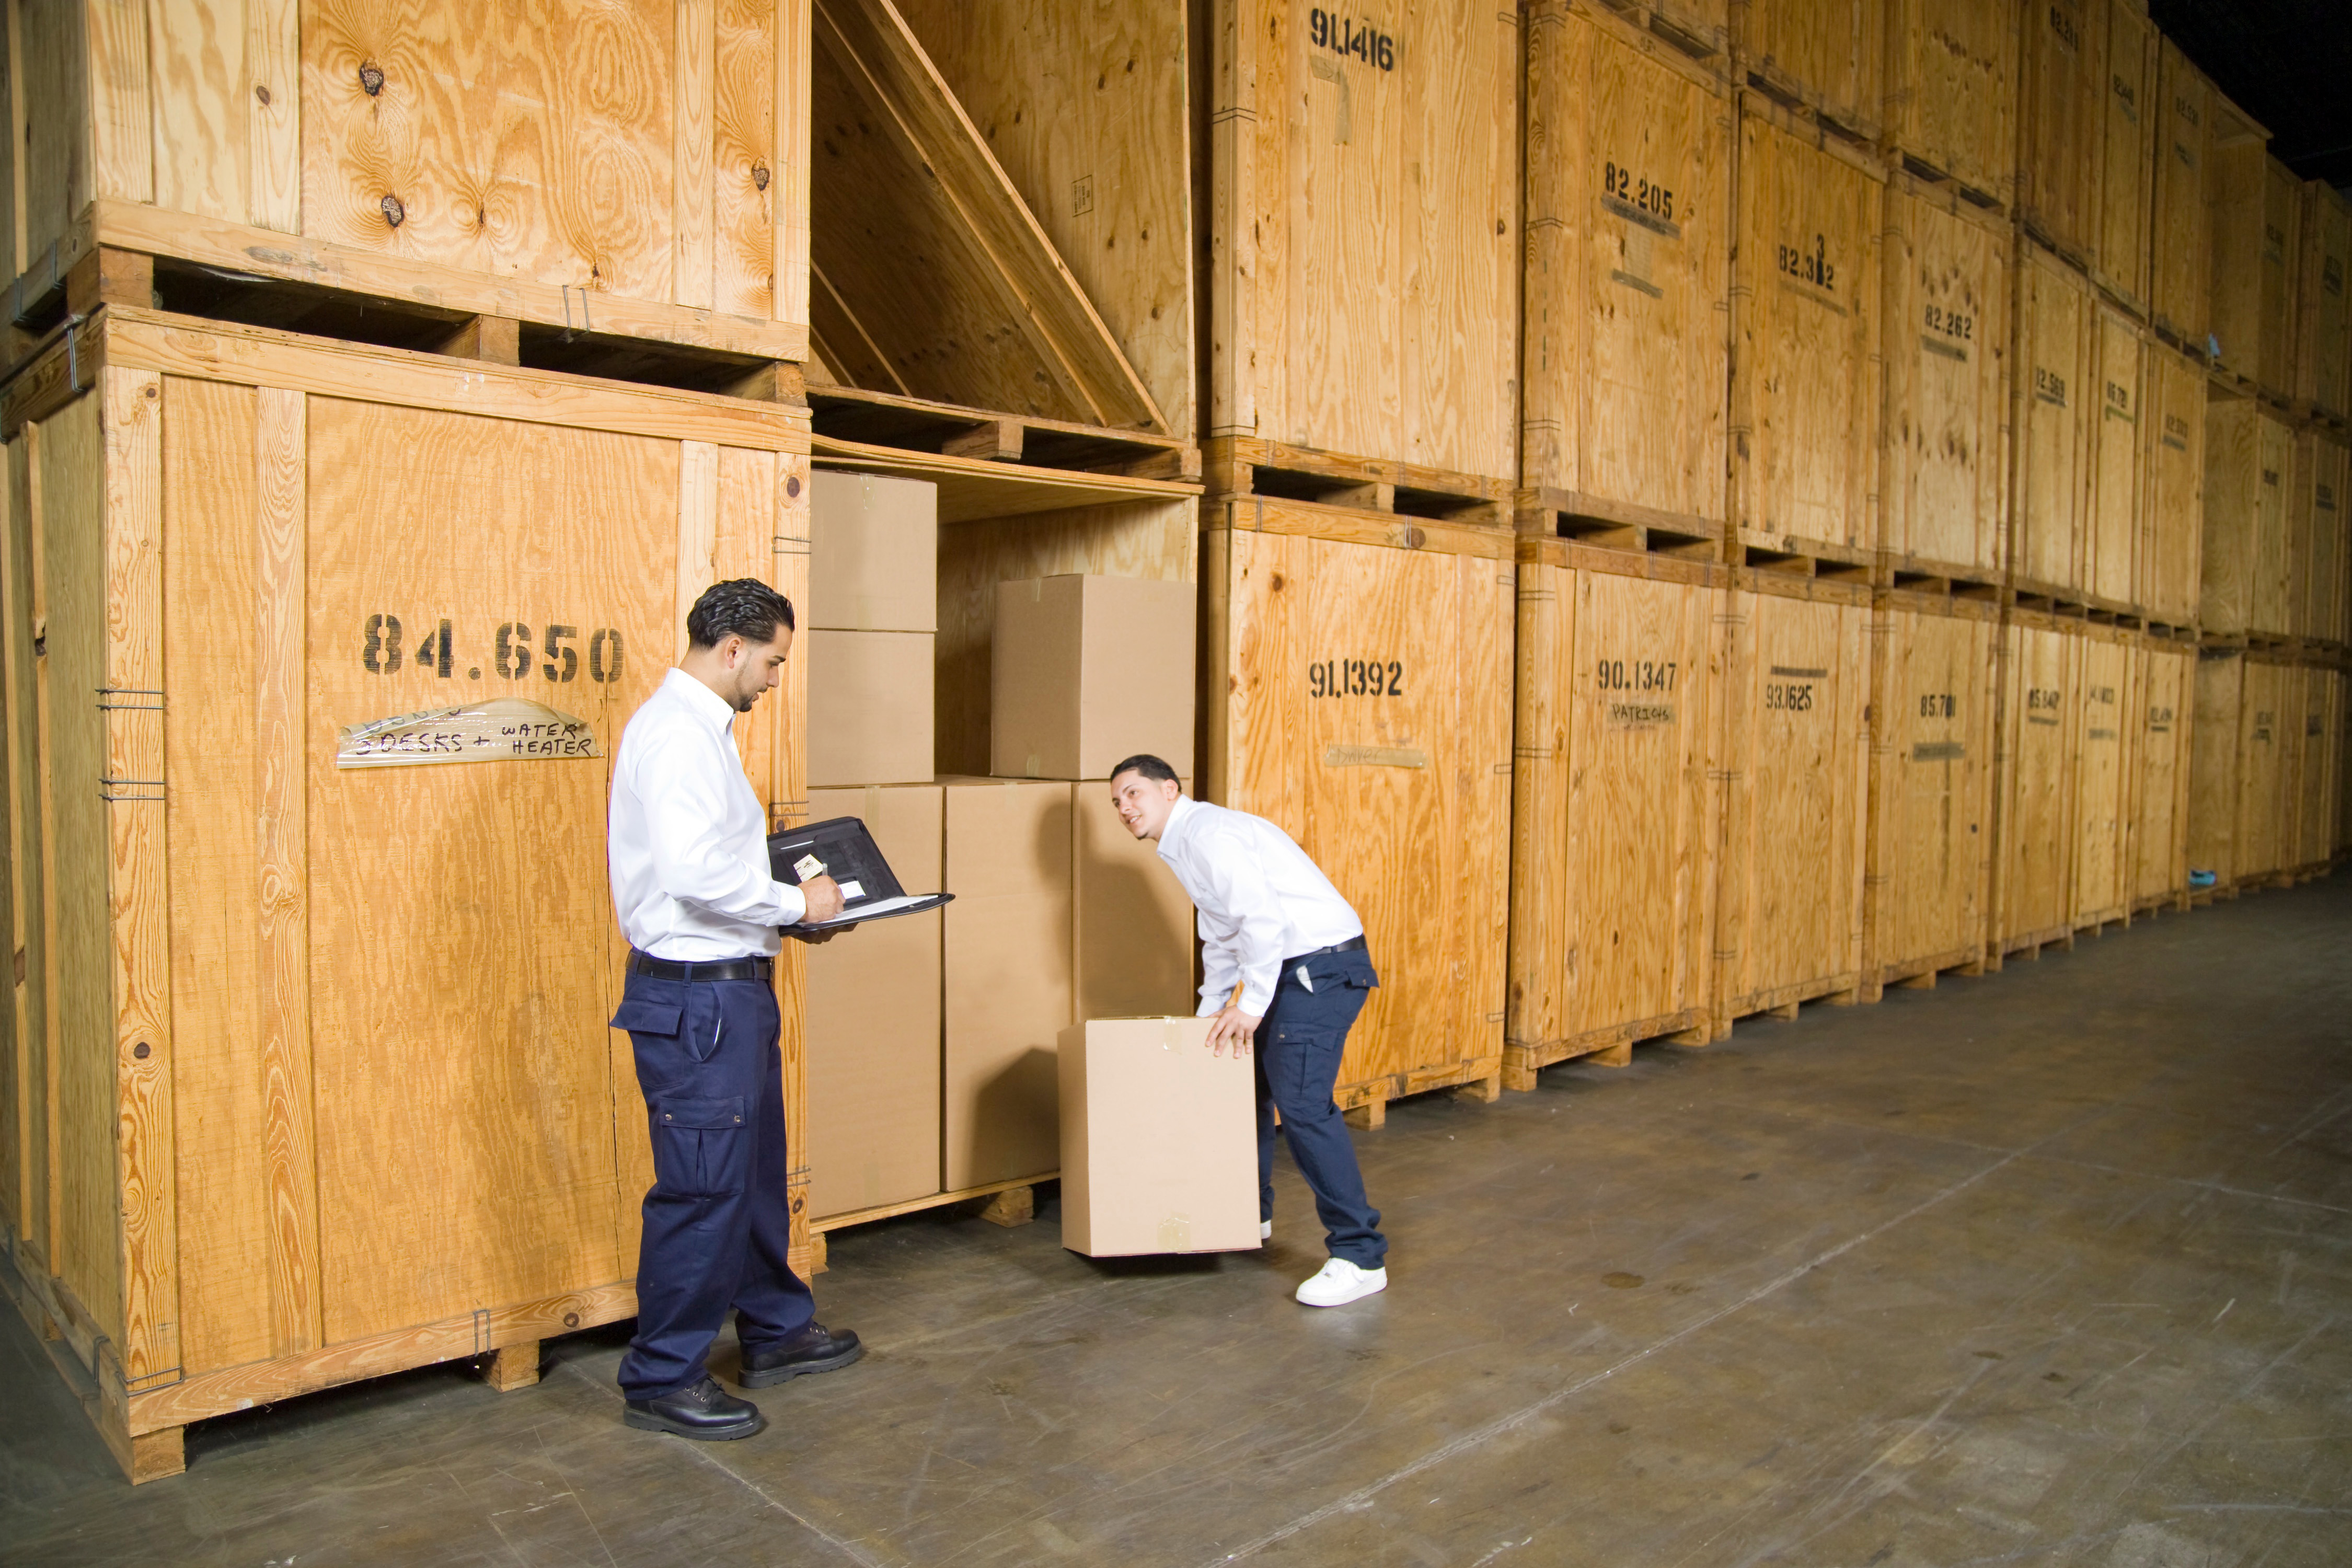 Benefits of a Self Storage Facility